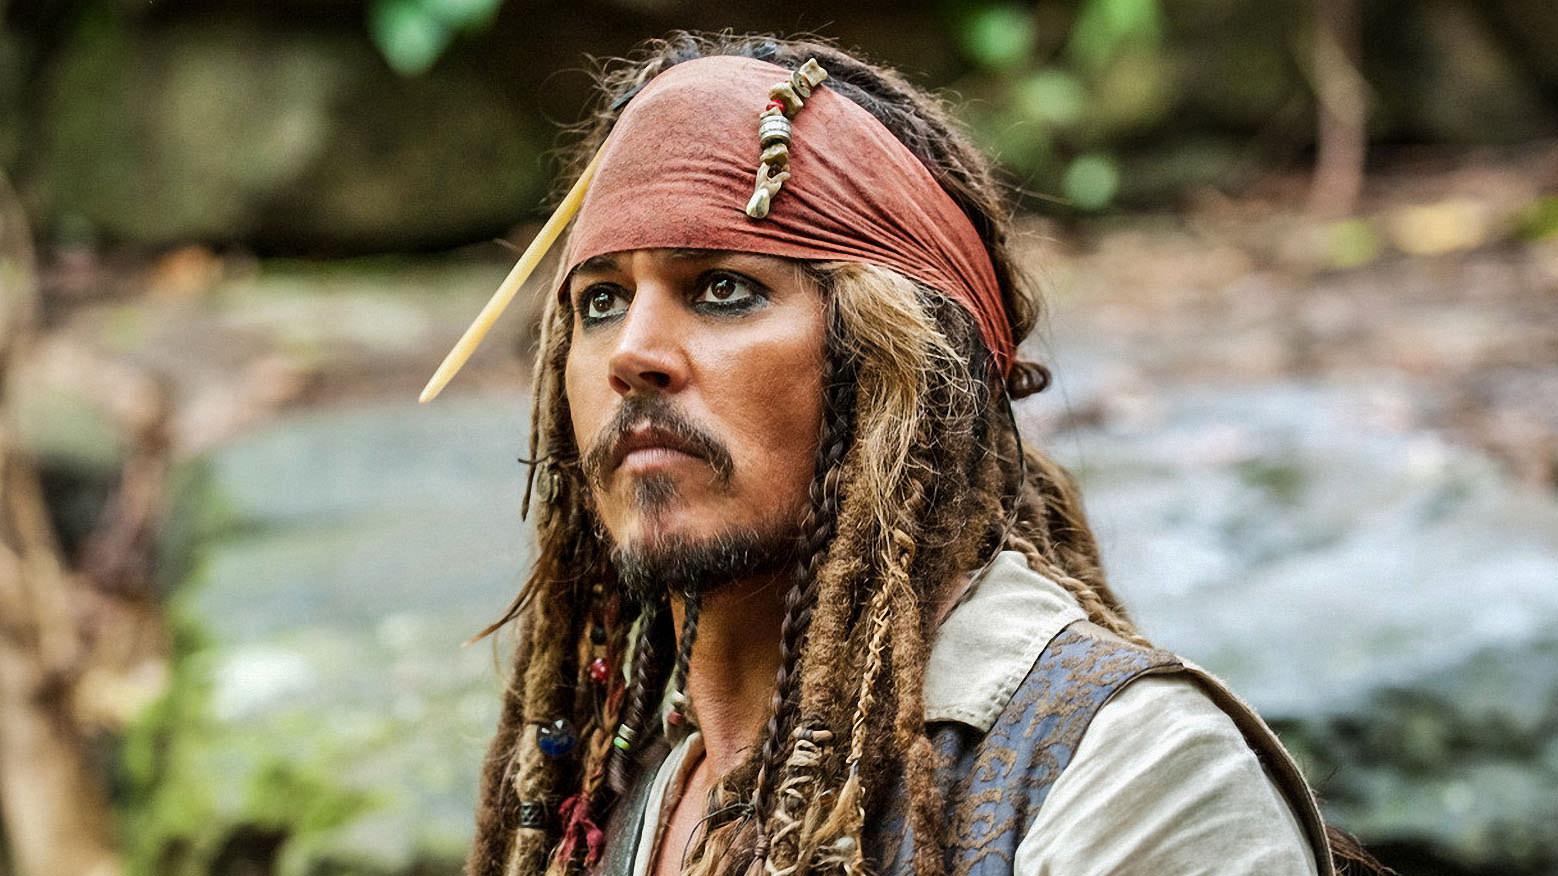 'Pirates 5' Teaser Shows Ghostly Villains